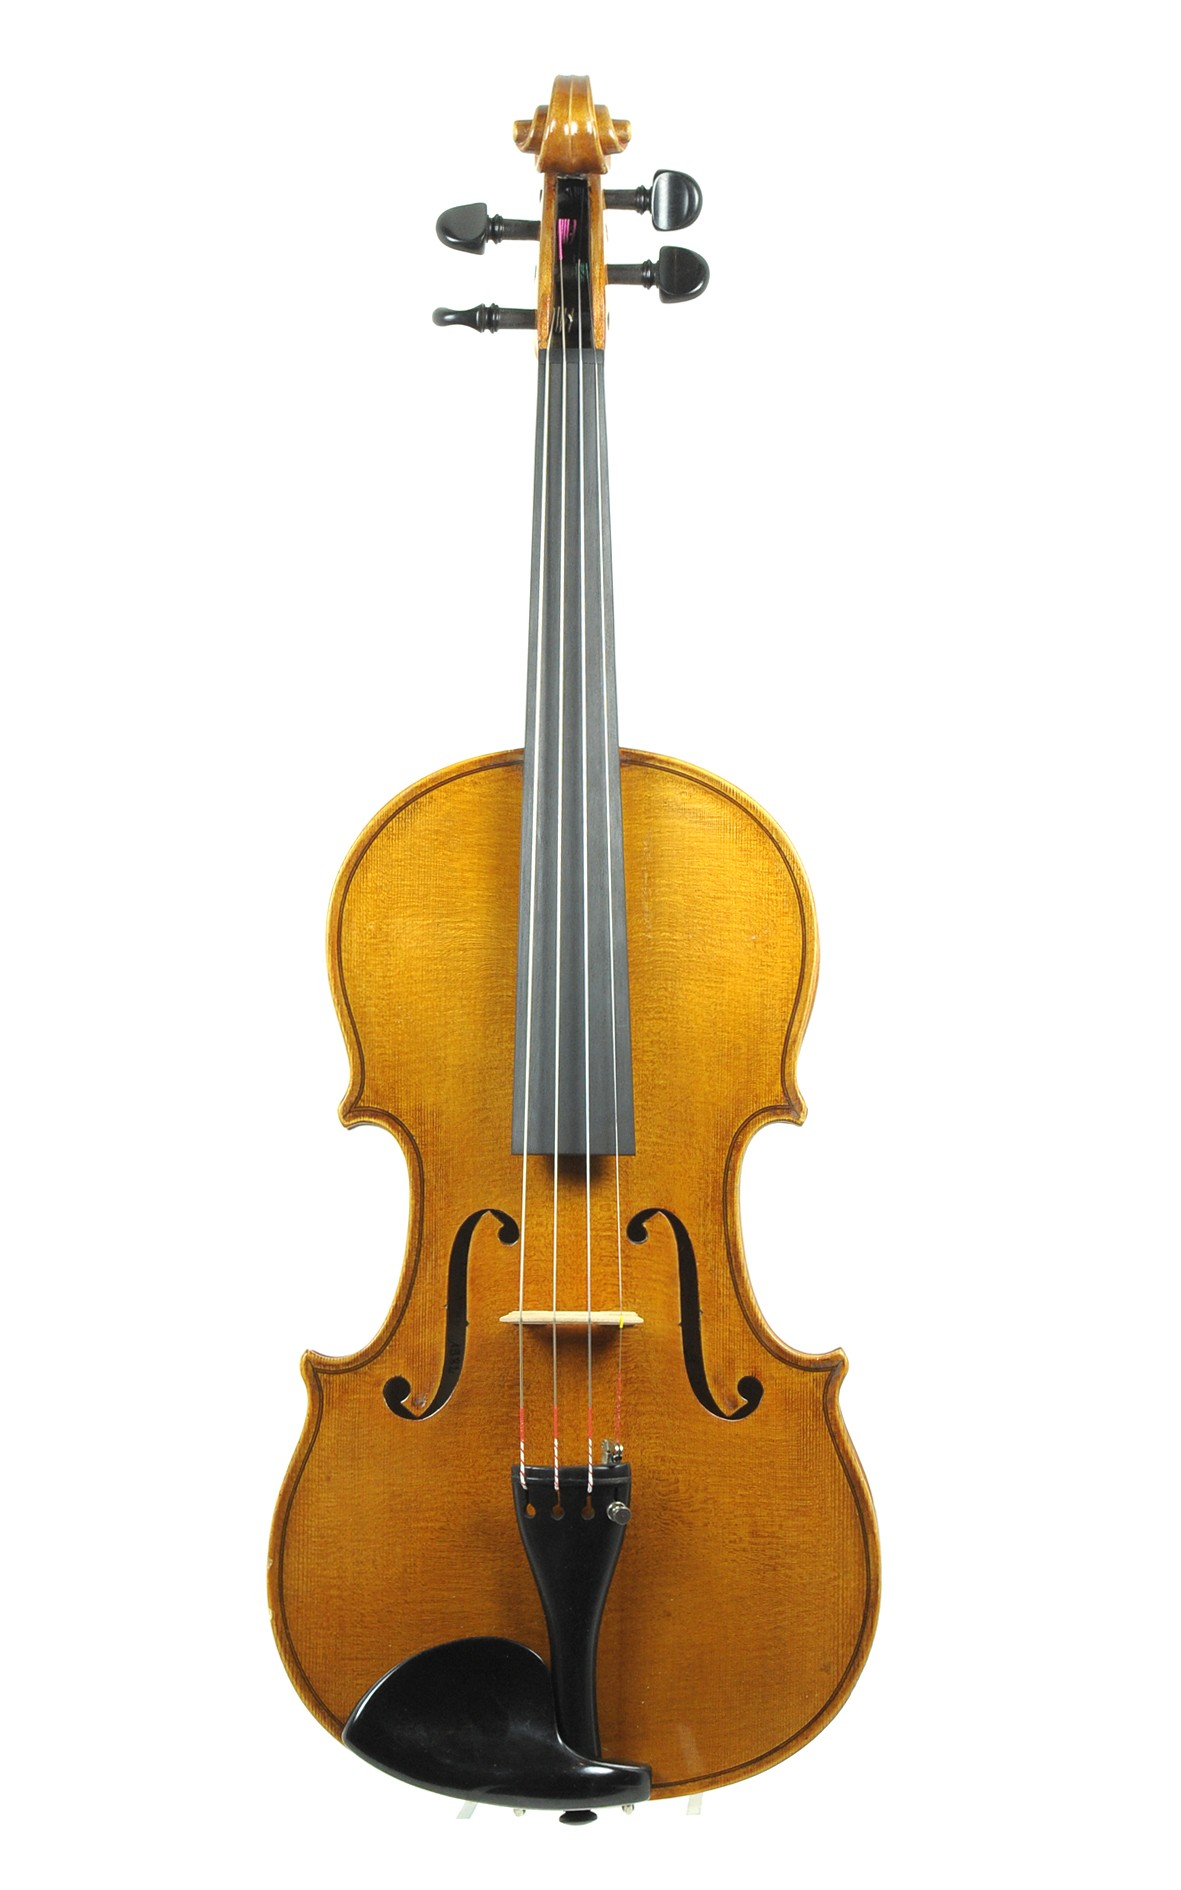 One of the last violins from the Hopf GDR-workshop